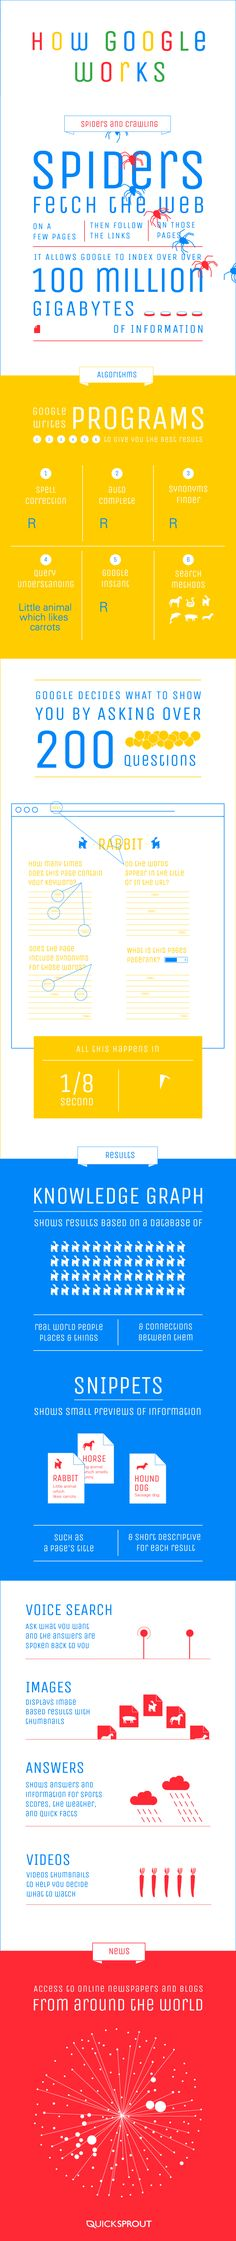 How #Google Works - animated #Infographic